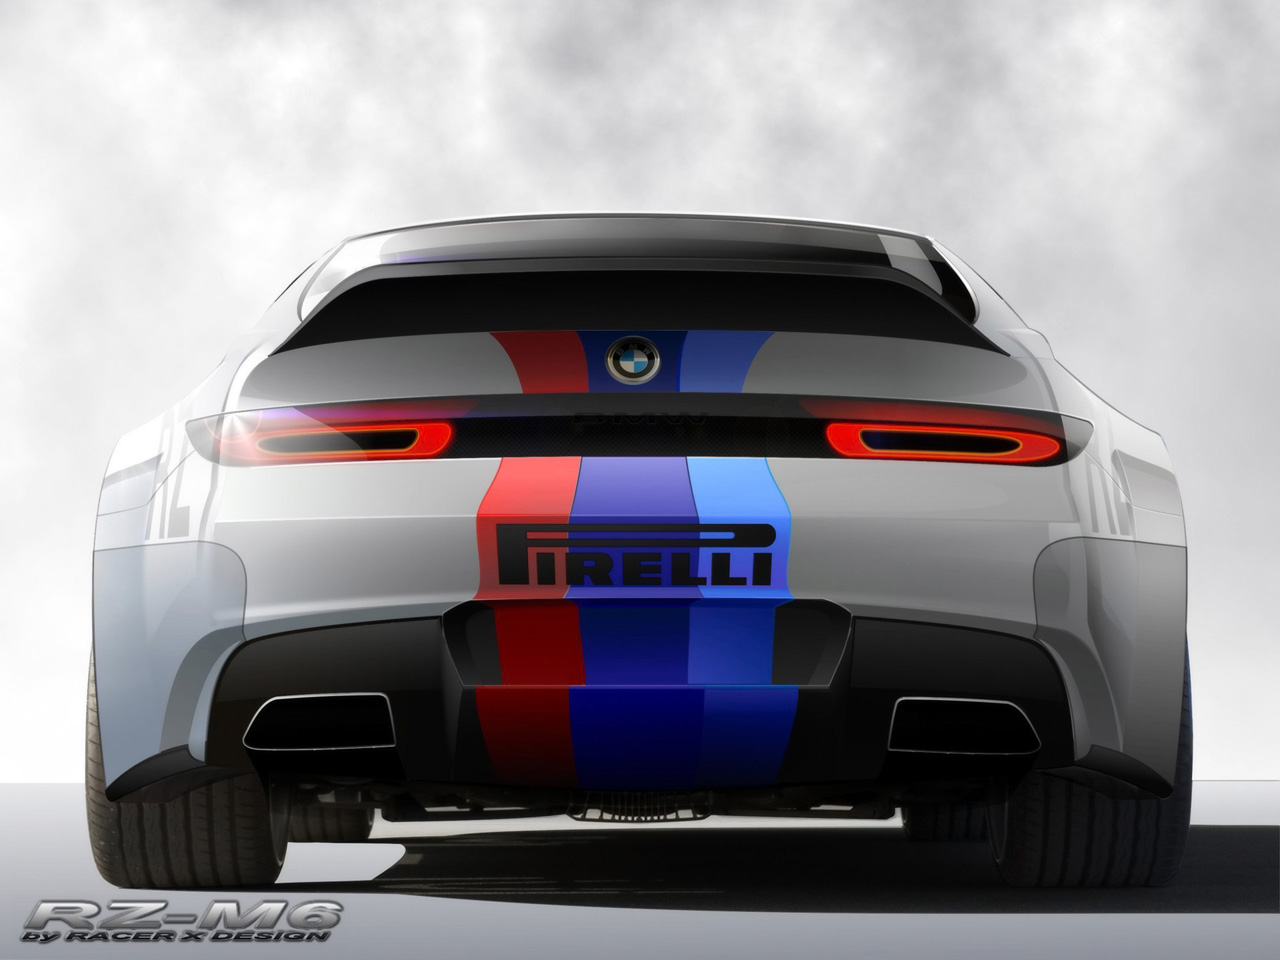 http://3.bp.blogspot.com/-EsRQn1DZ8Yk/Tib53ATxKvI/AAAAAAAAIGs/g0hio372m7w/s1600/BMW+RZ-M6+by+Racer+X+Design+Wallpapers+6.jpg